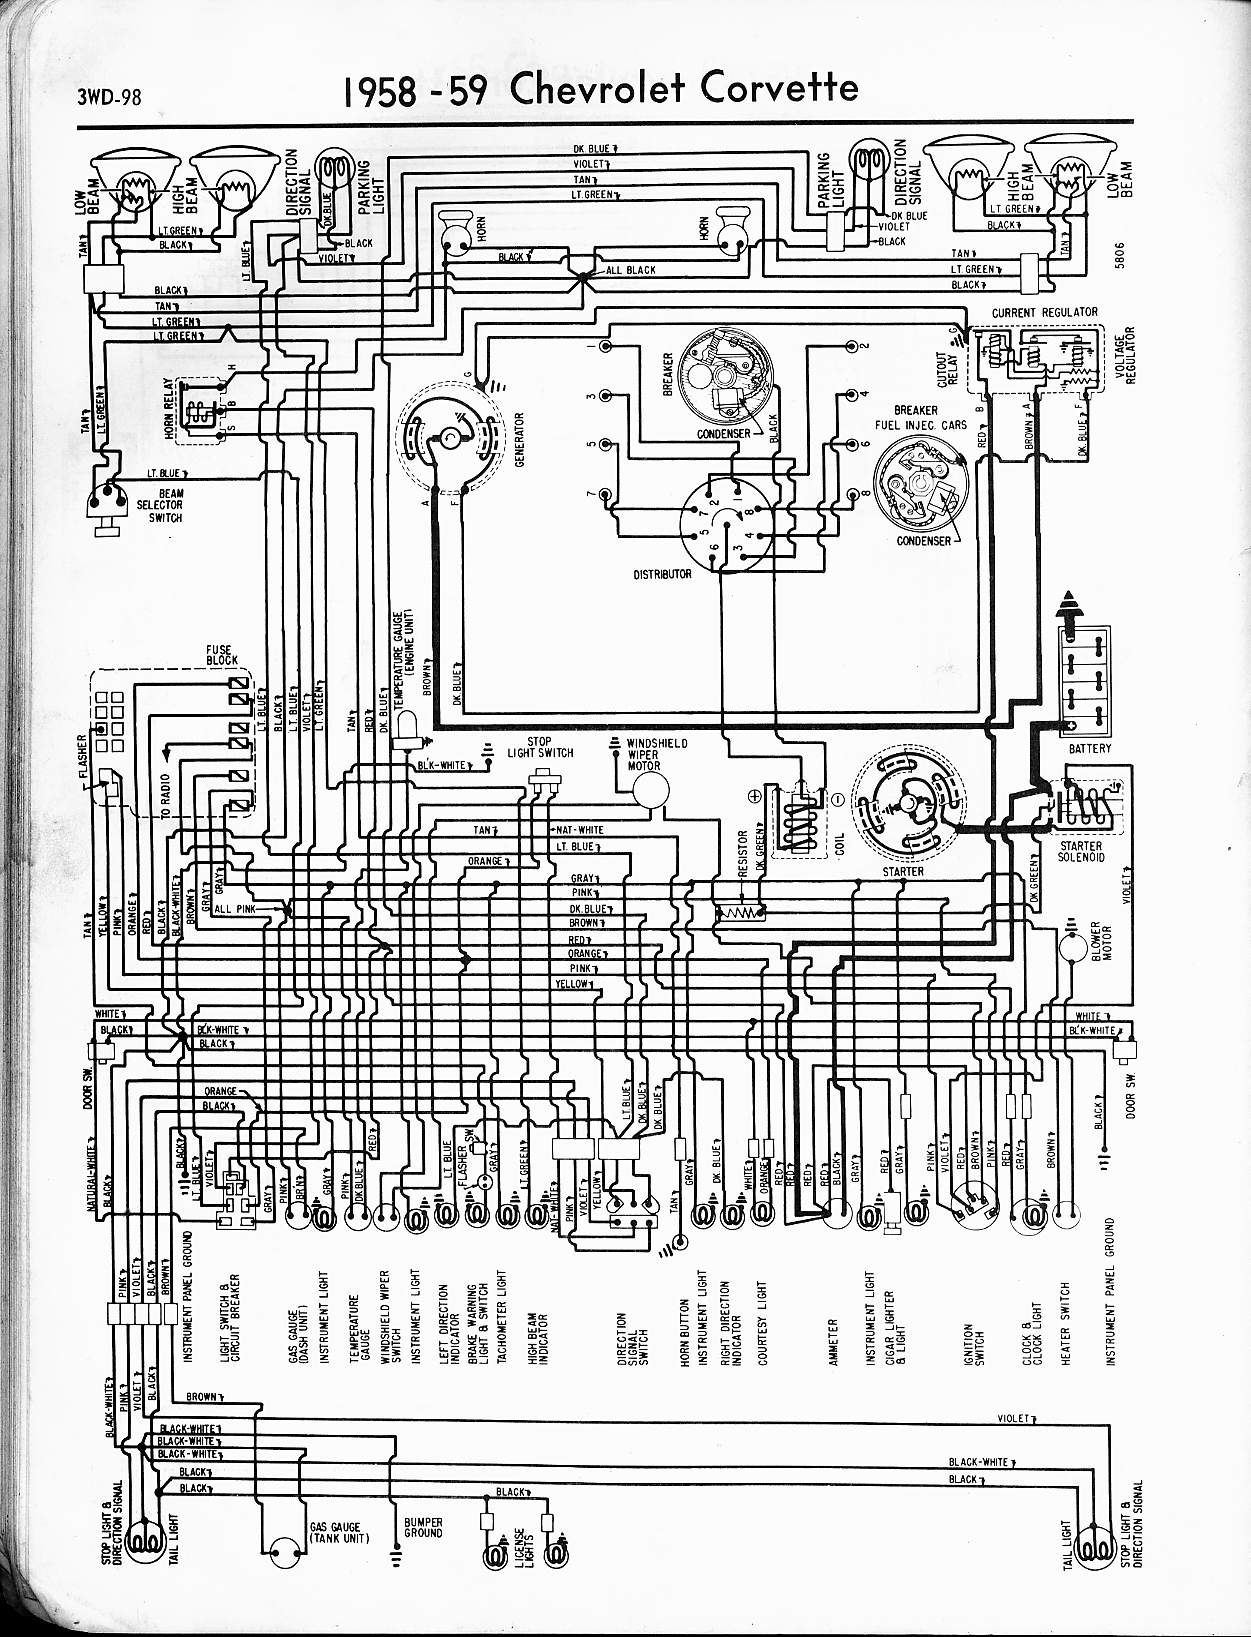 MWireChev58_3WD 098 100 [ car ignition wiring diagram ] affordable nice 1968 1967 chevy impala wiring diagram at webbmarketing.co